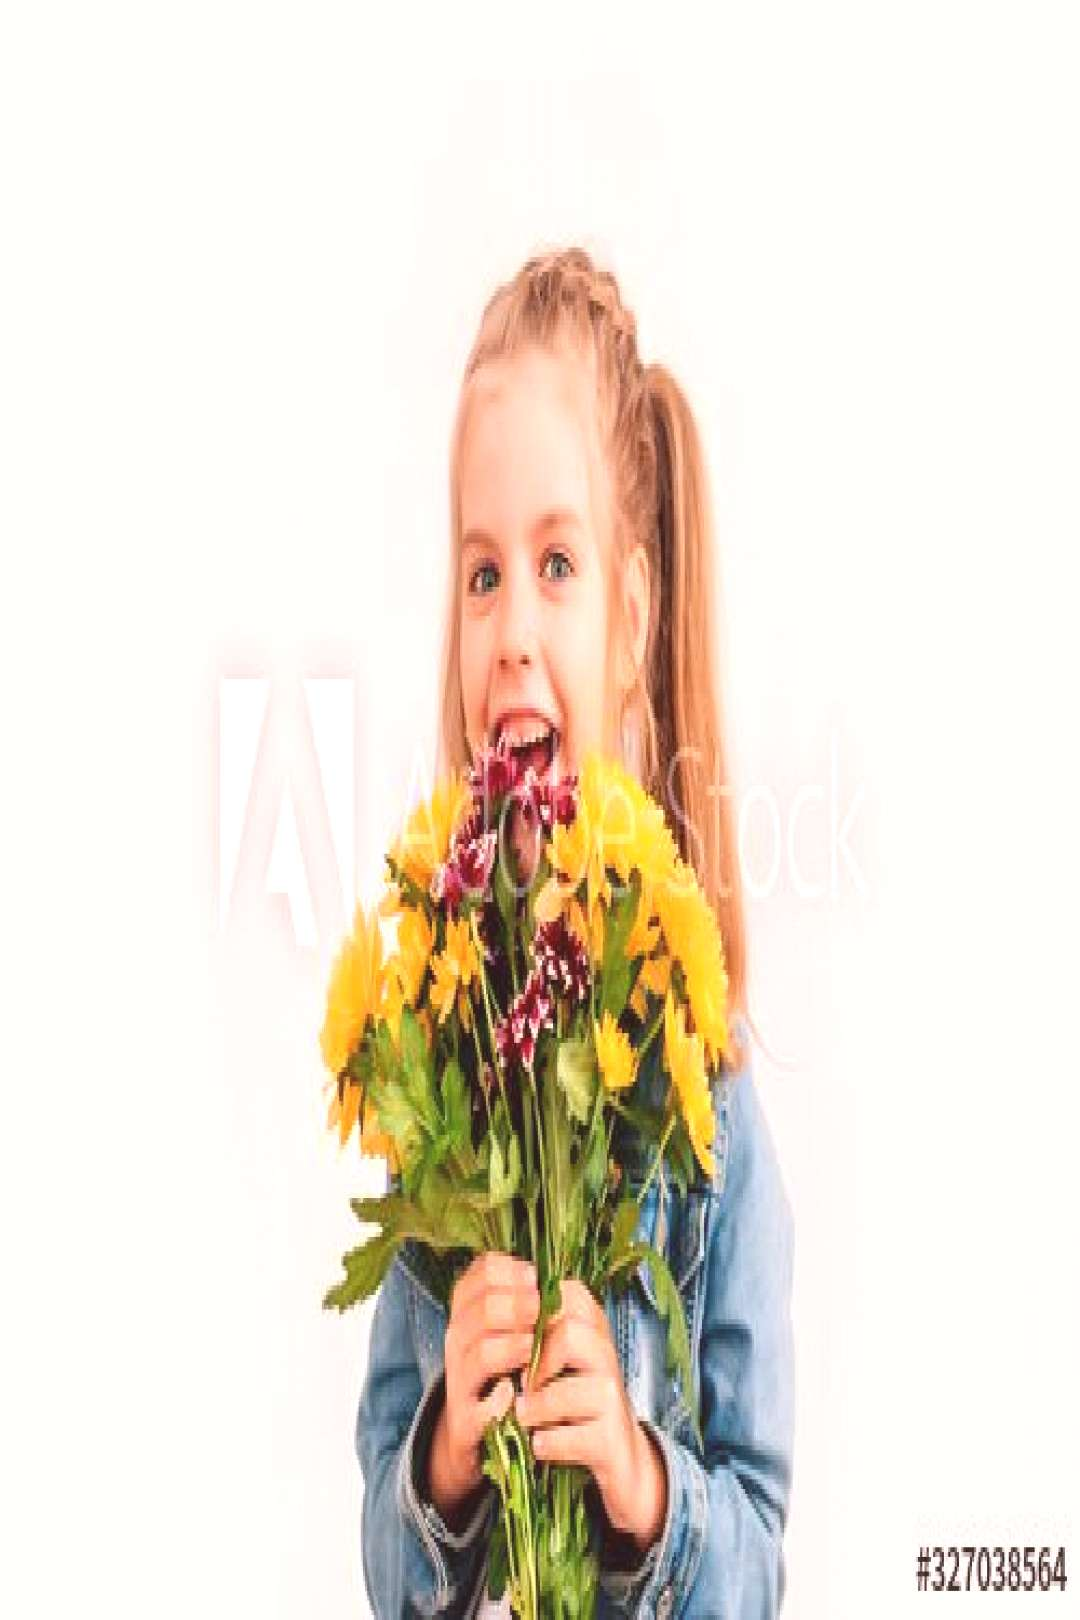 little blonde girl in an blue jacket holds chrysanthemums and gerberas in her hands on a white back